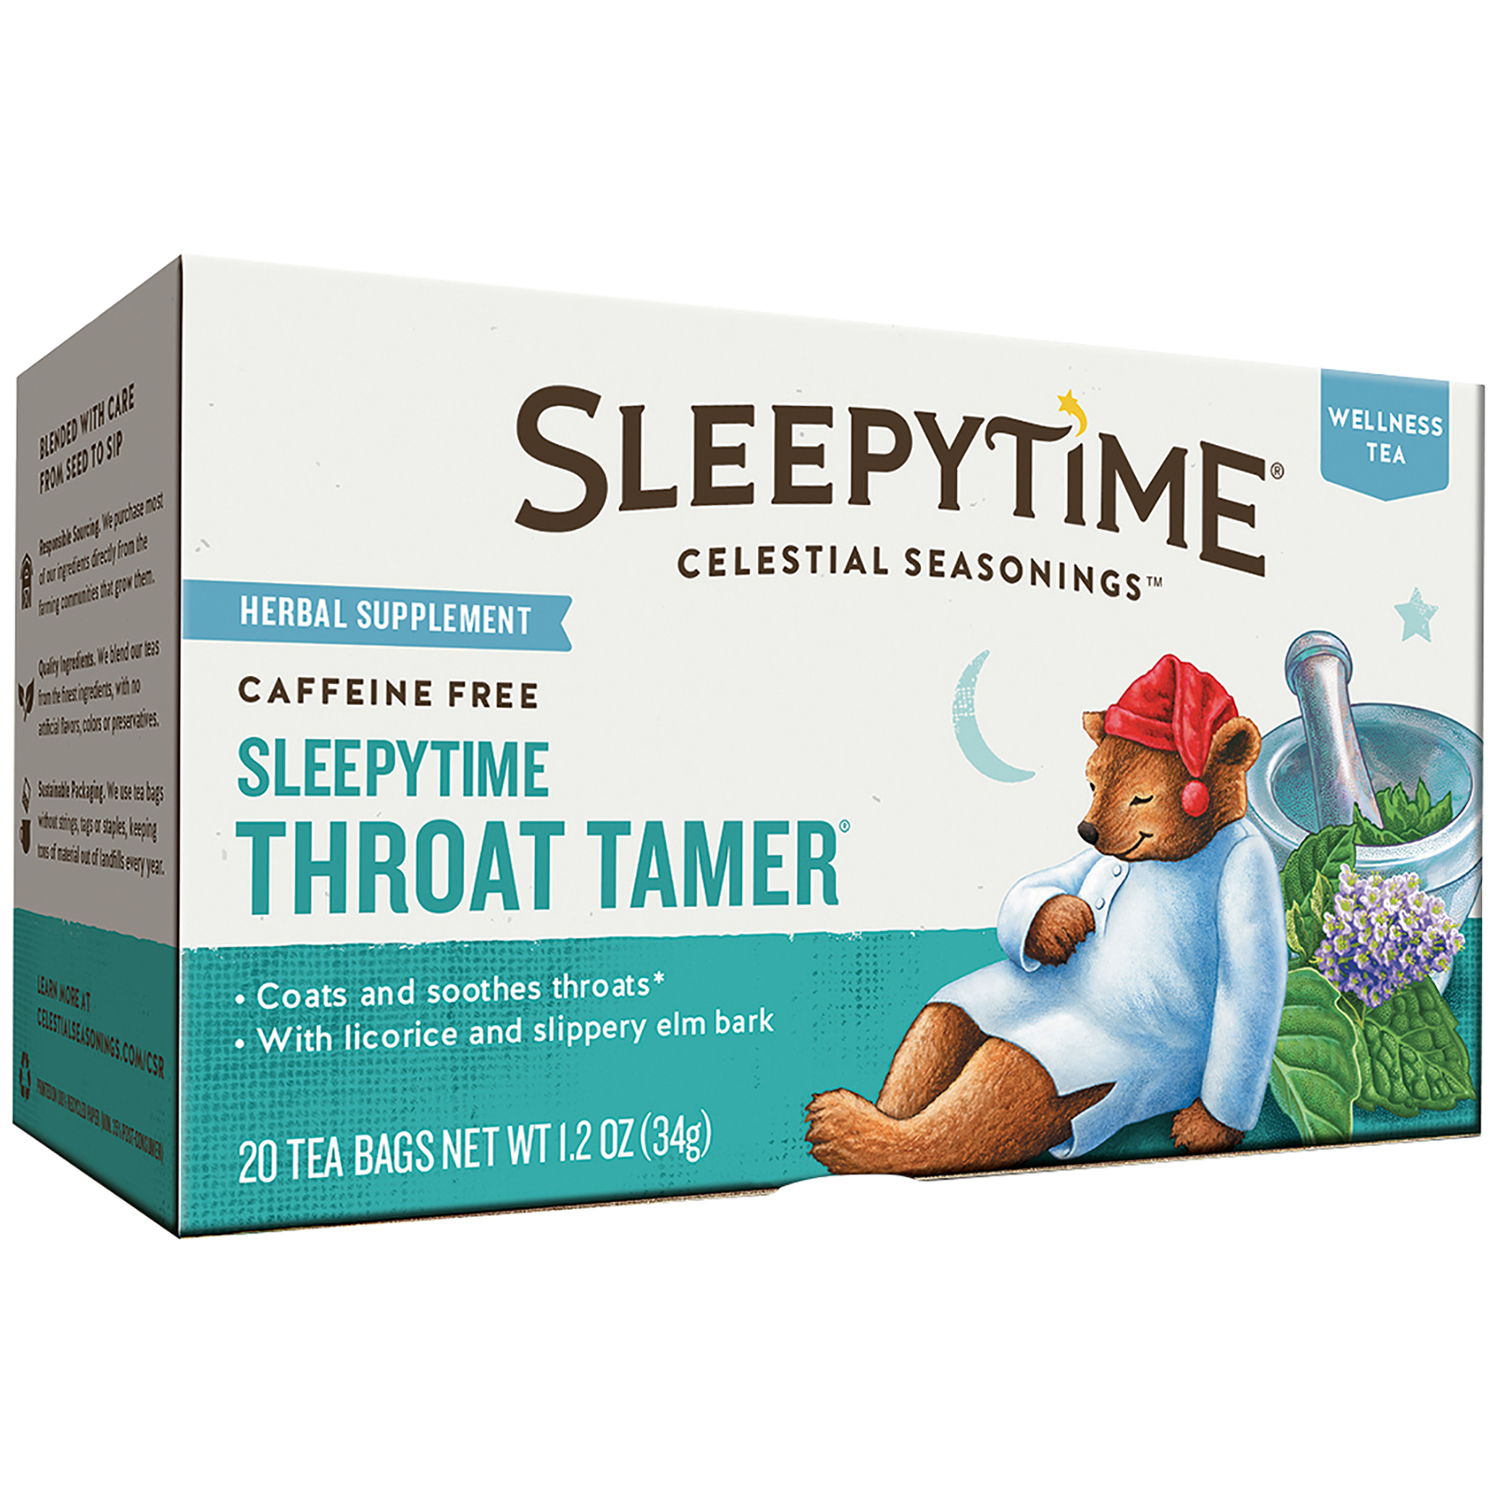 Celestial Seasonings™ Sleepytime® Throat Tamer® Herbal Supplement Tea Bags 20 ct Box